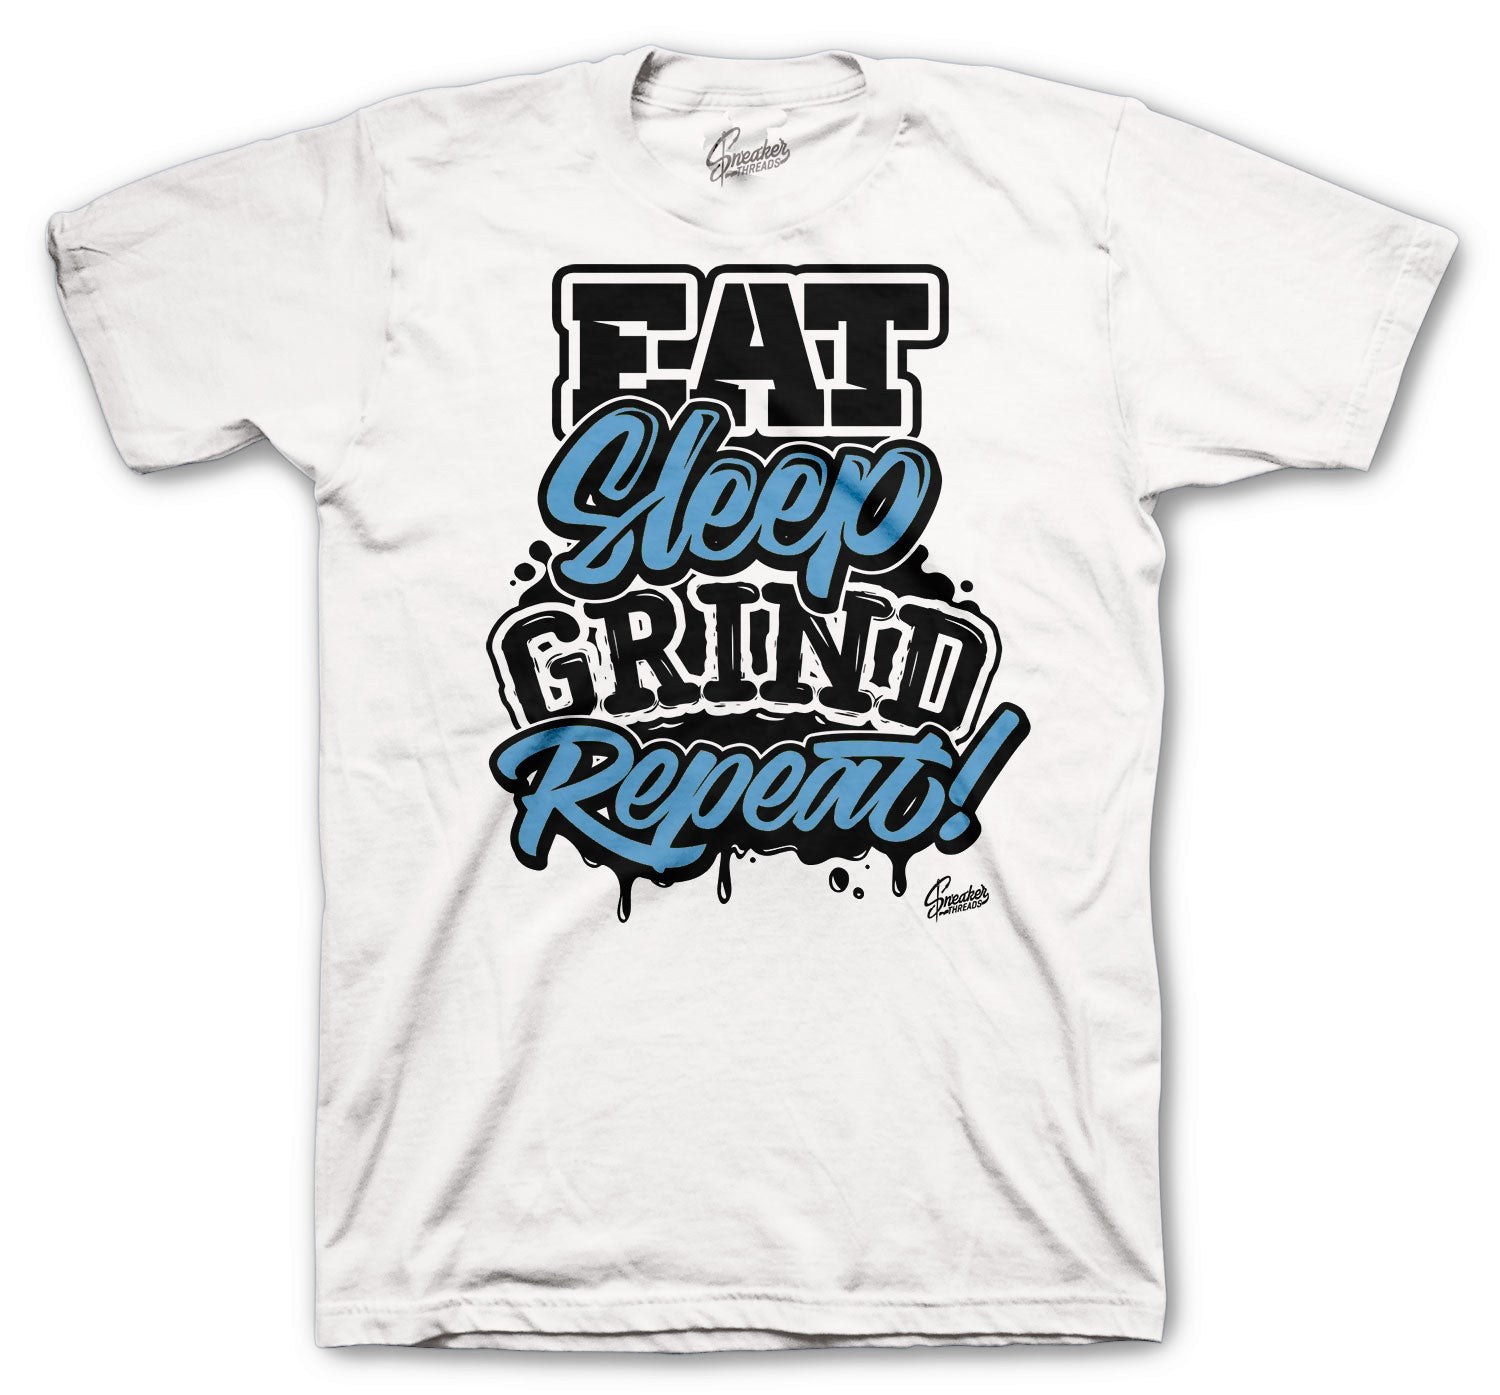 Jordan 3 UNC Shirt - Daily Routine - White